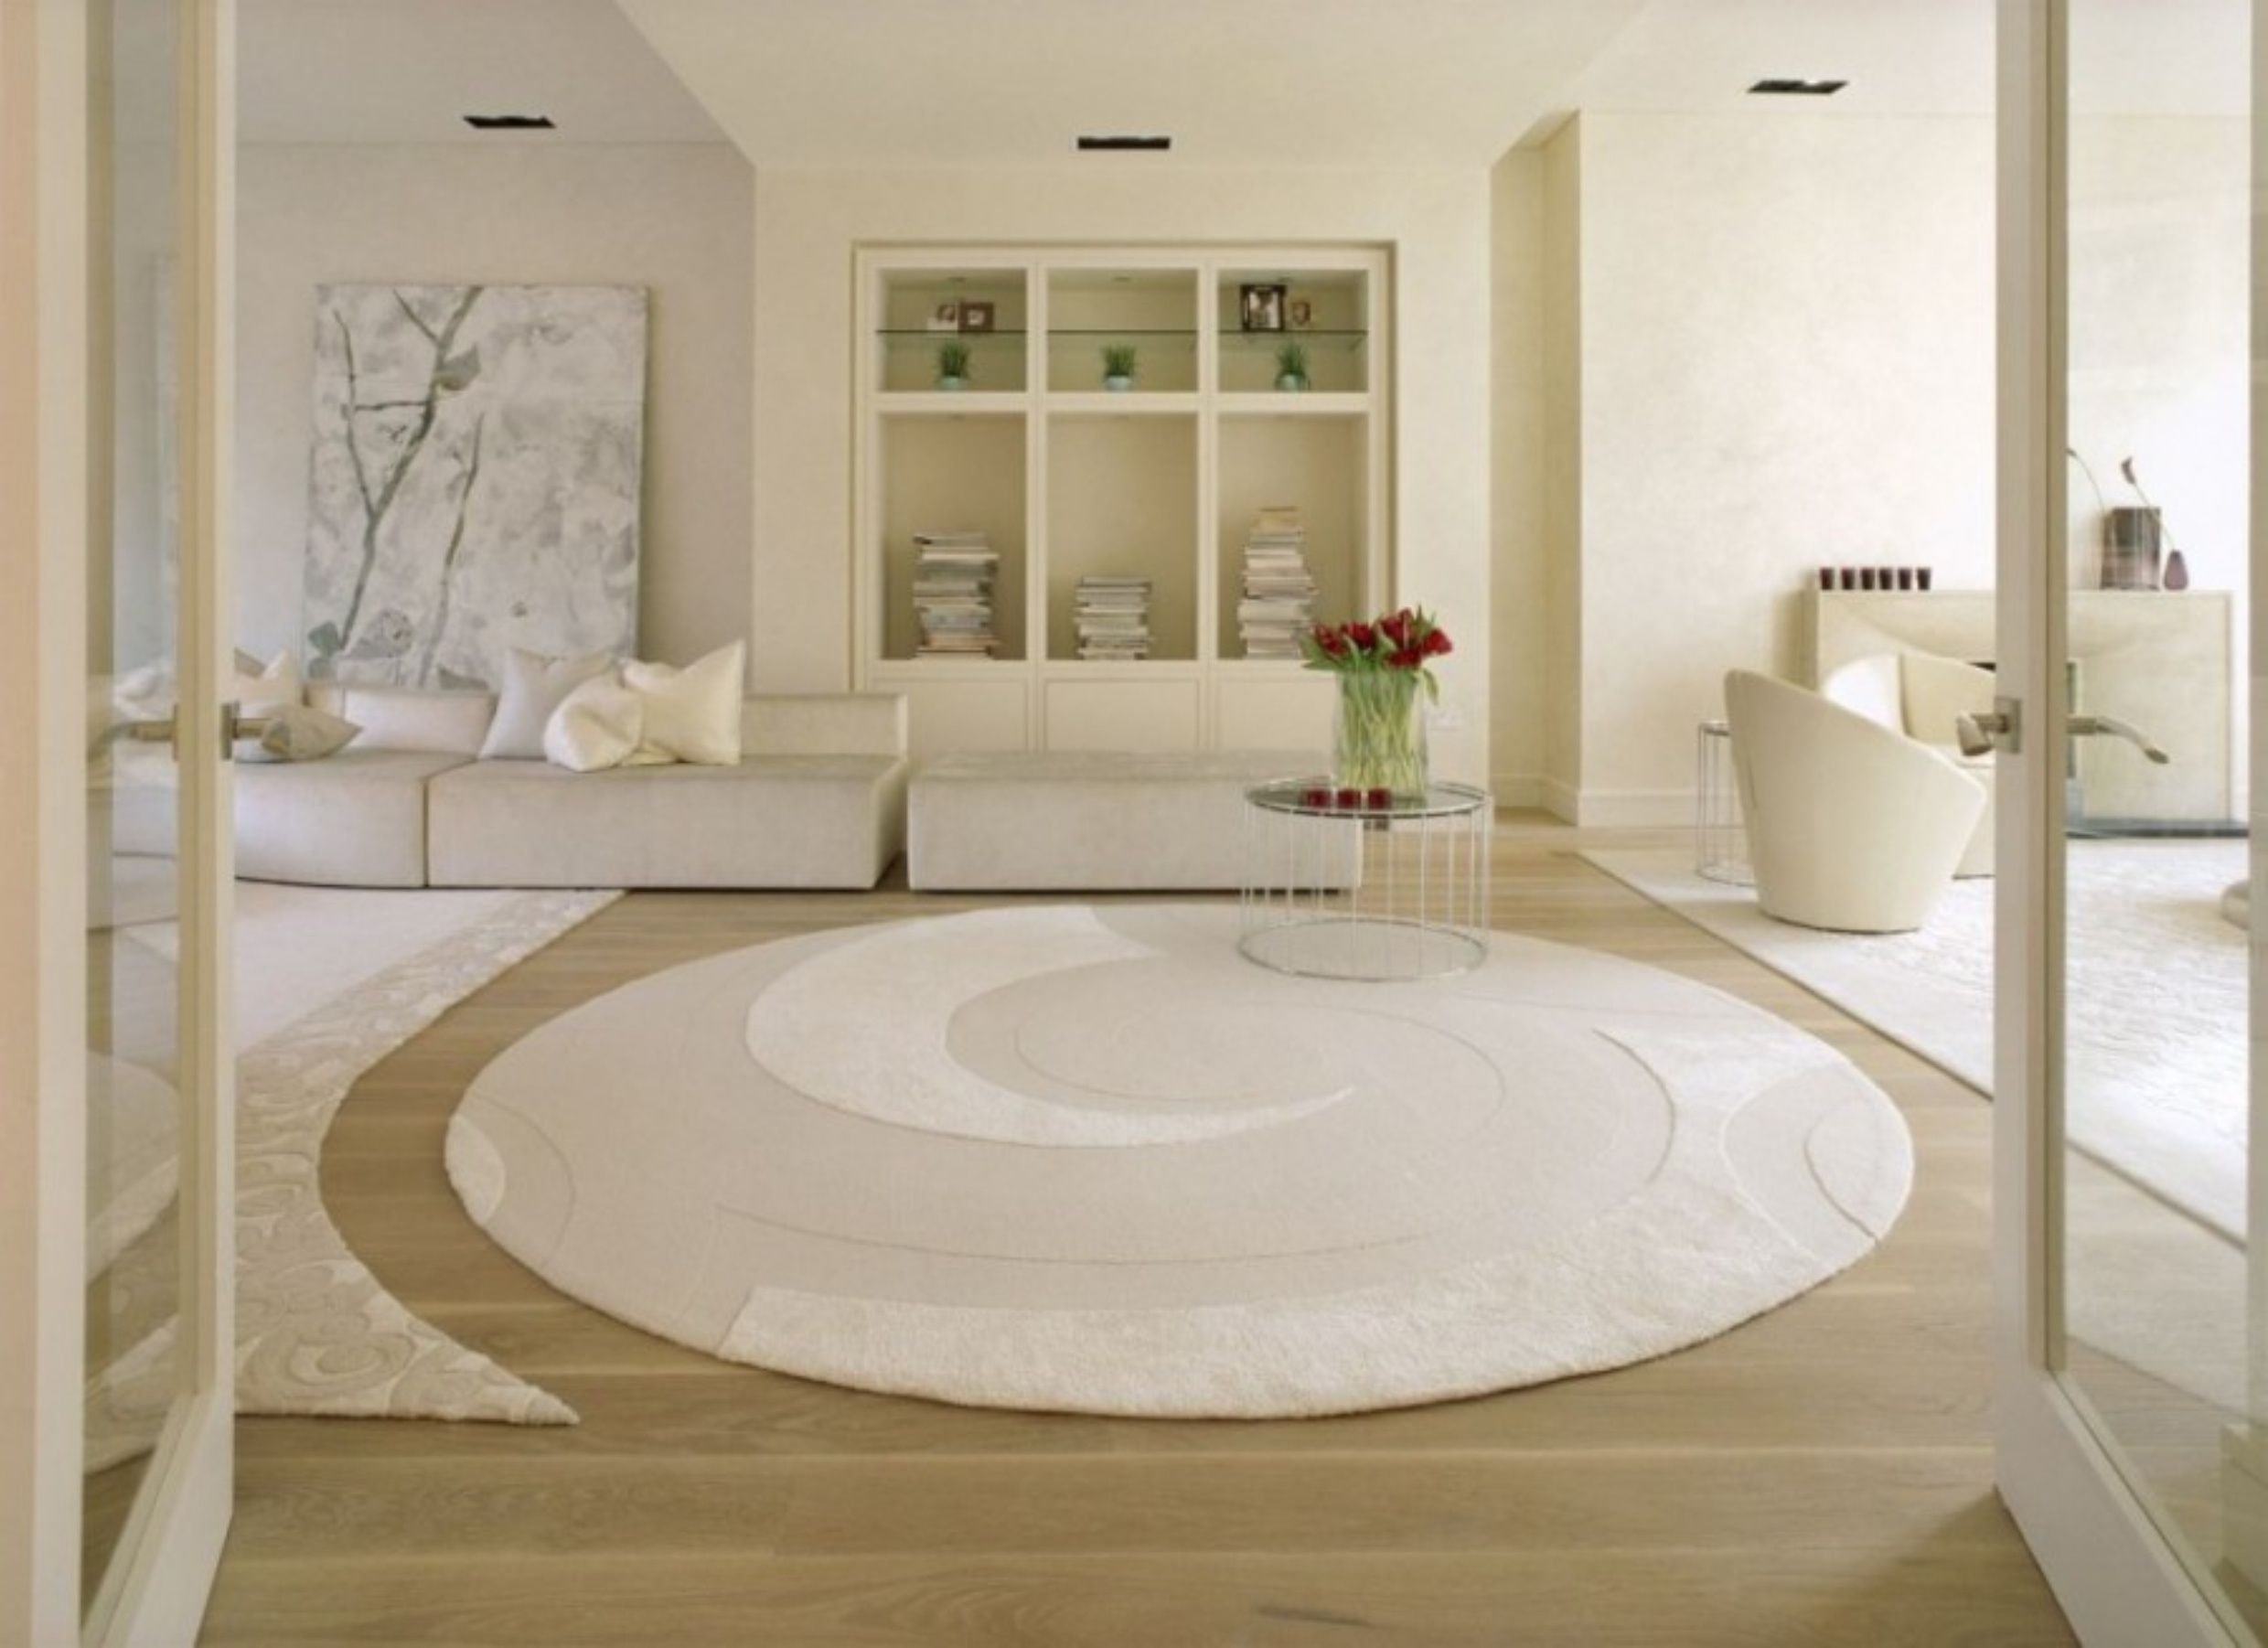 White Round Extra Large Bathroom Rug Large Bathroom Rugs - Large bathroom rugs for bathroom decorating ideas